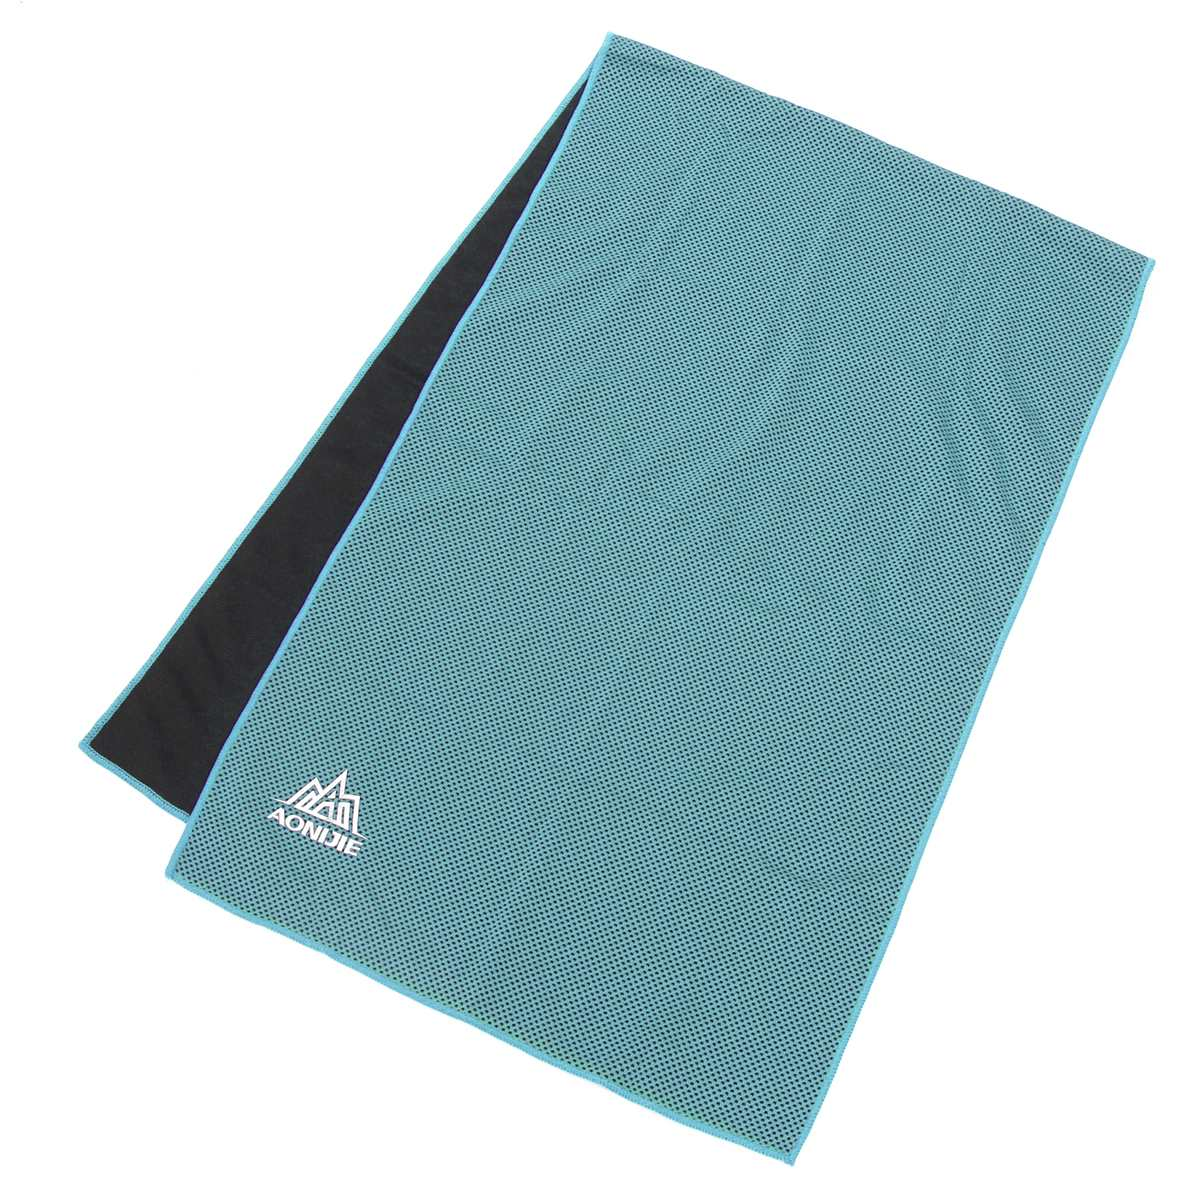 Sweat Towels Sizes: 1pcs 30*100cm Larger Size Swimming Travel Gym Towel